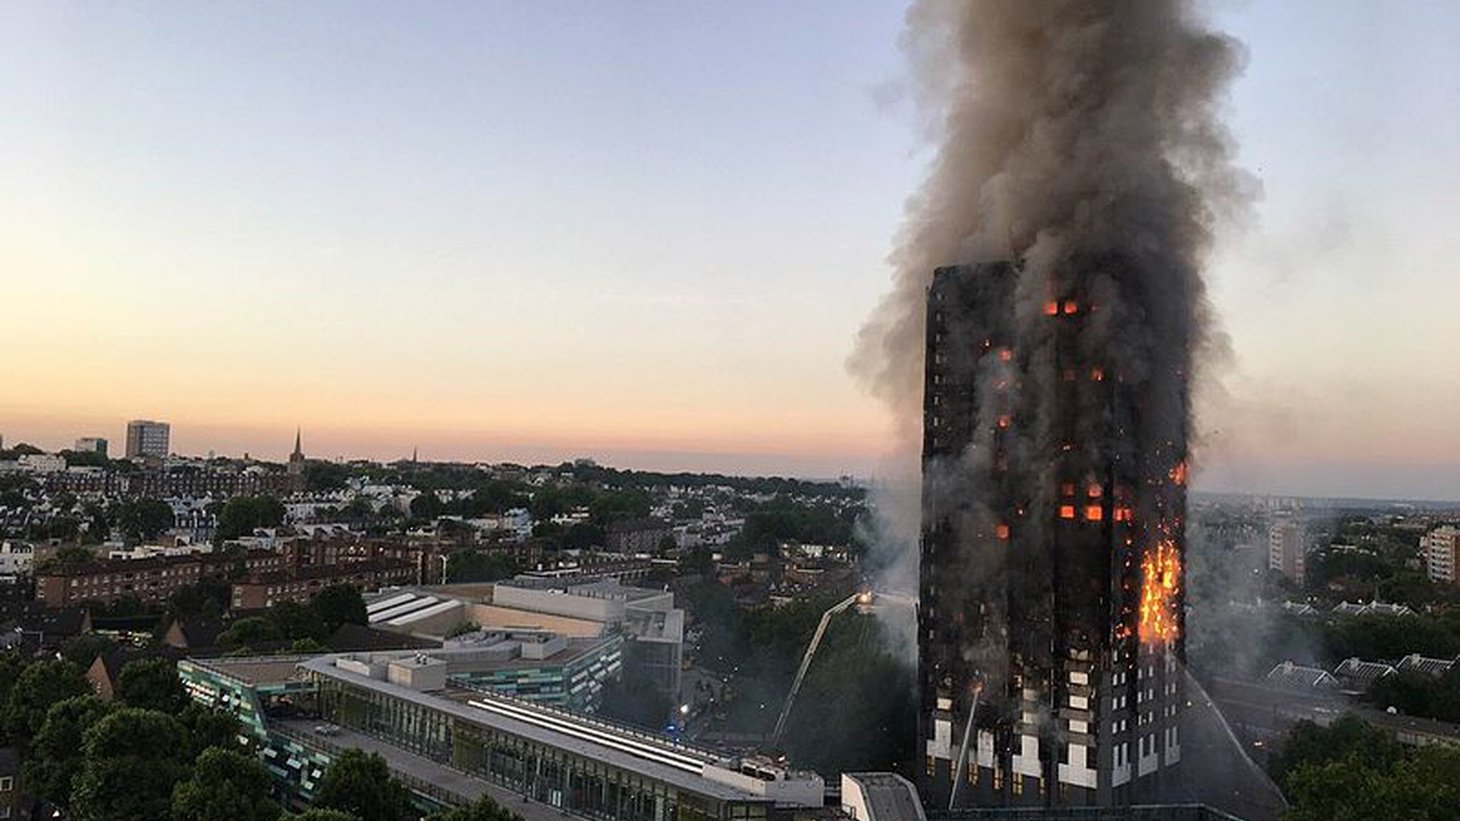 The exact cause of the fatal blaze that consumed London's Grenfell Tower in the Borough of Kensington is not yet known, but the findings will be closely watched by fire safety experts, designers and builders worldwide. That includes in Los Angeles where new high-rise towers are under construction, and some older towers are being retrofitted.